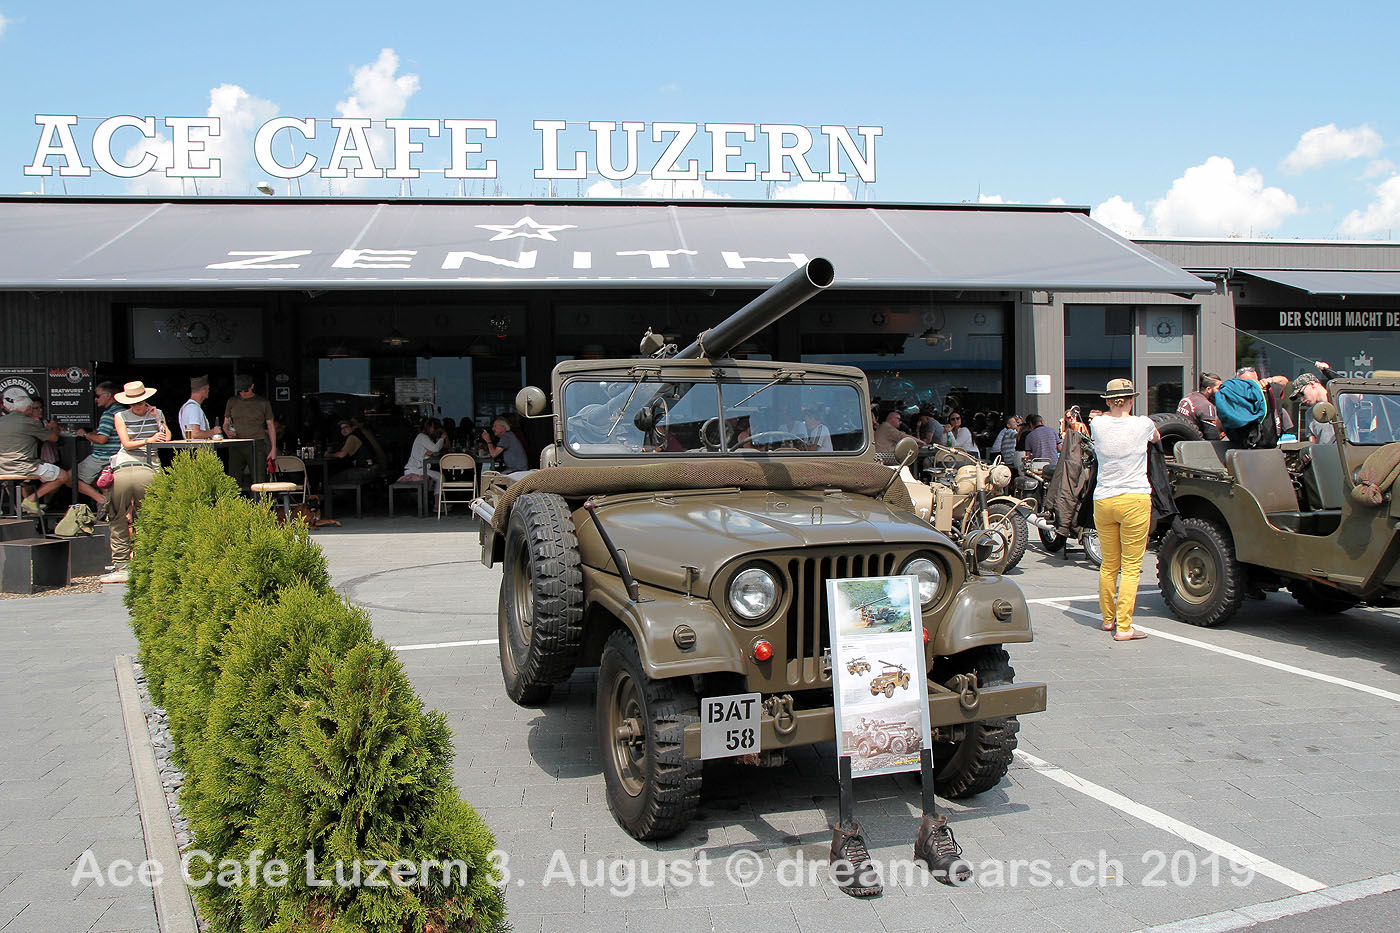 Ace Cafe Luzern 3. August 2019